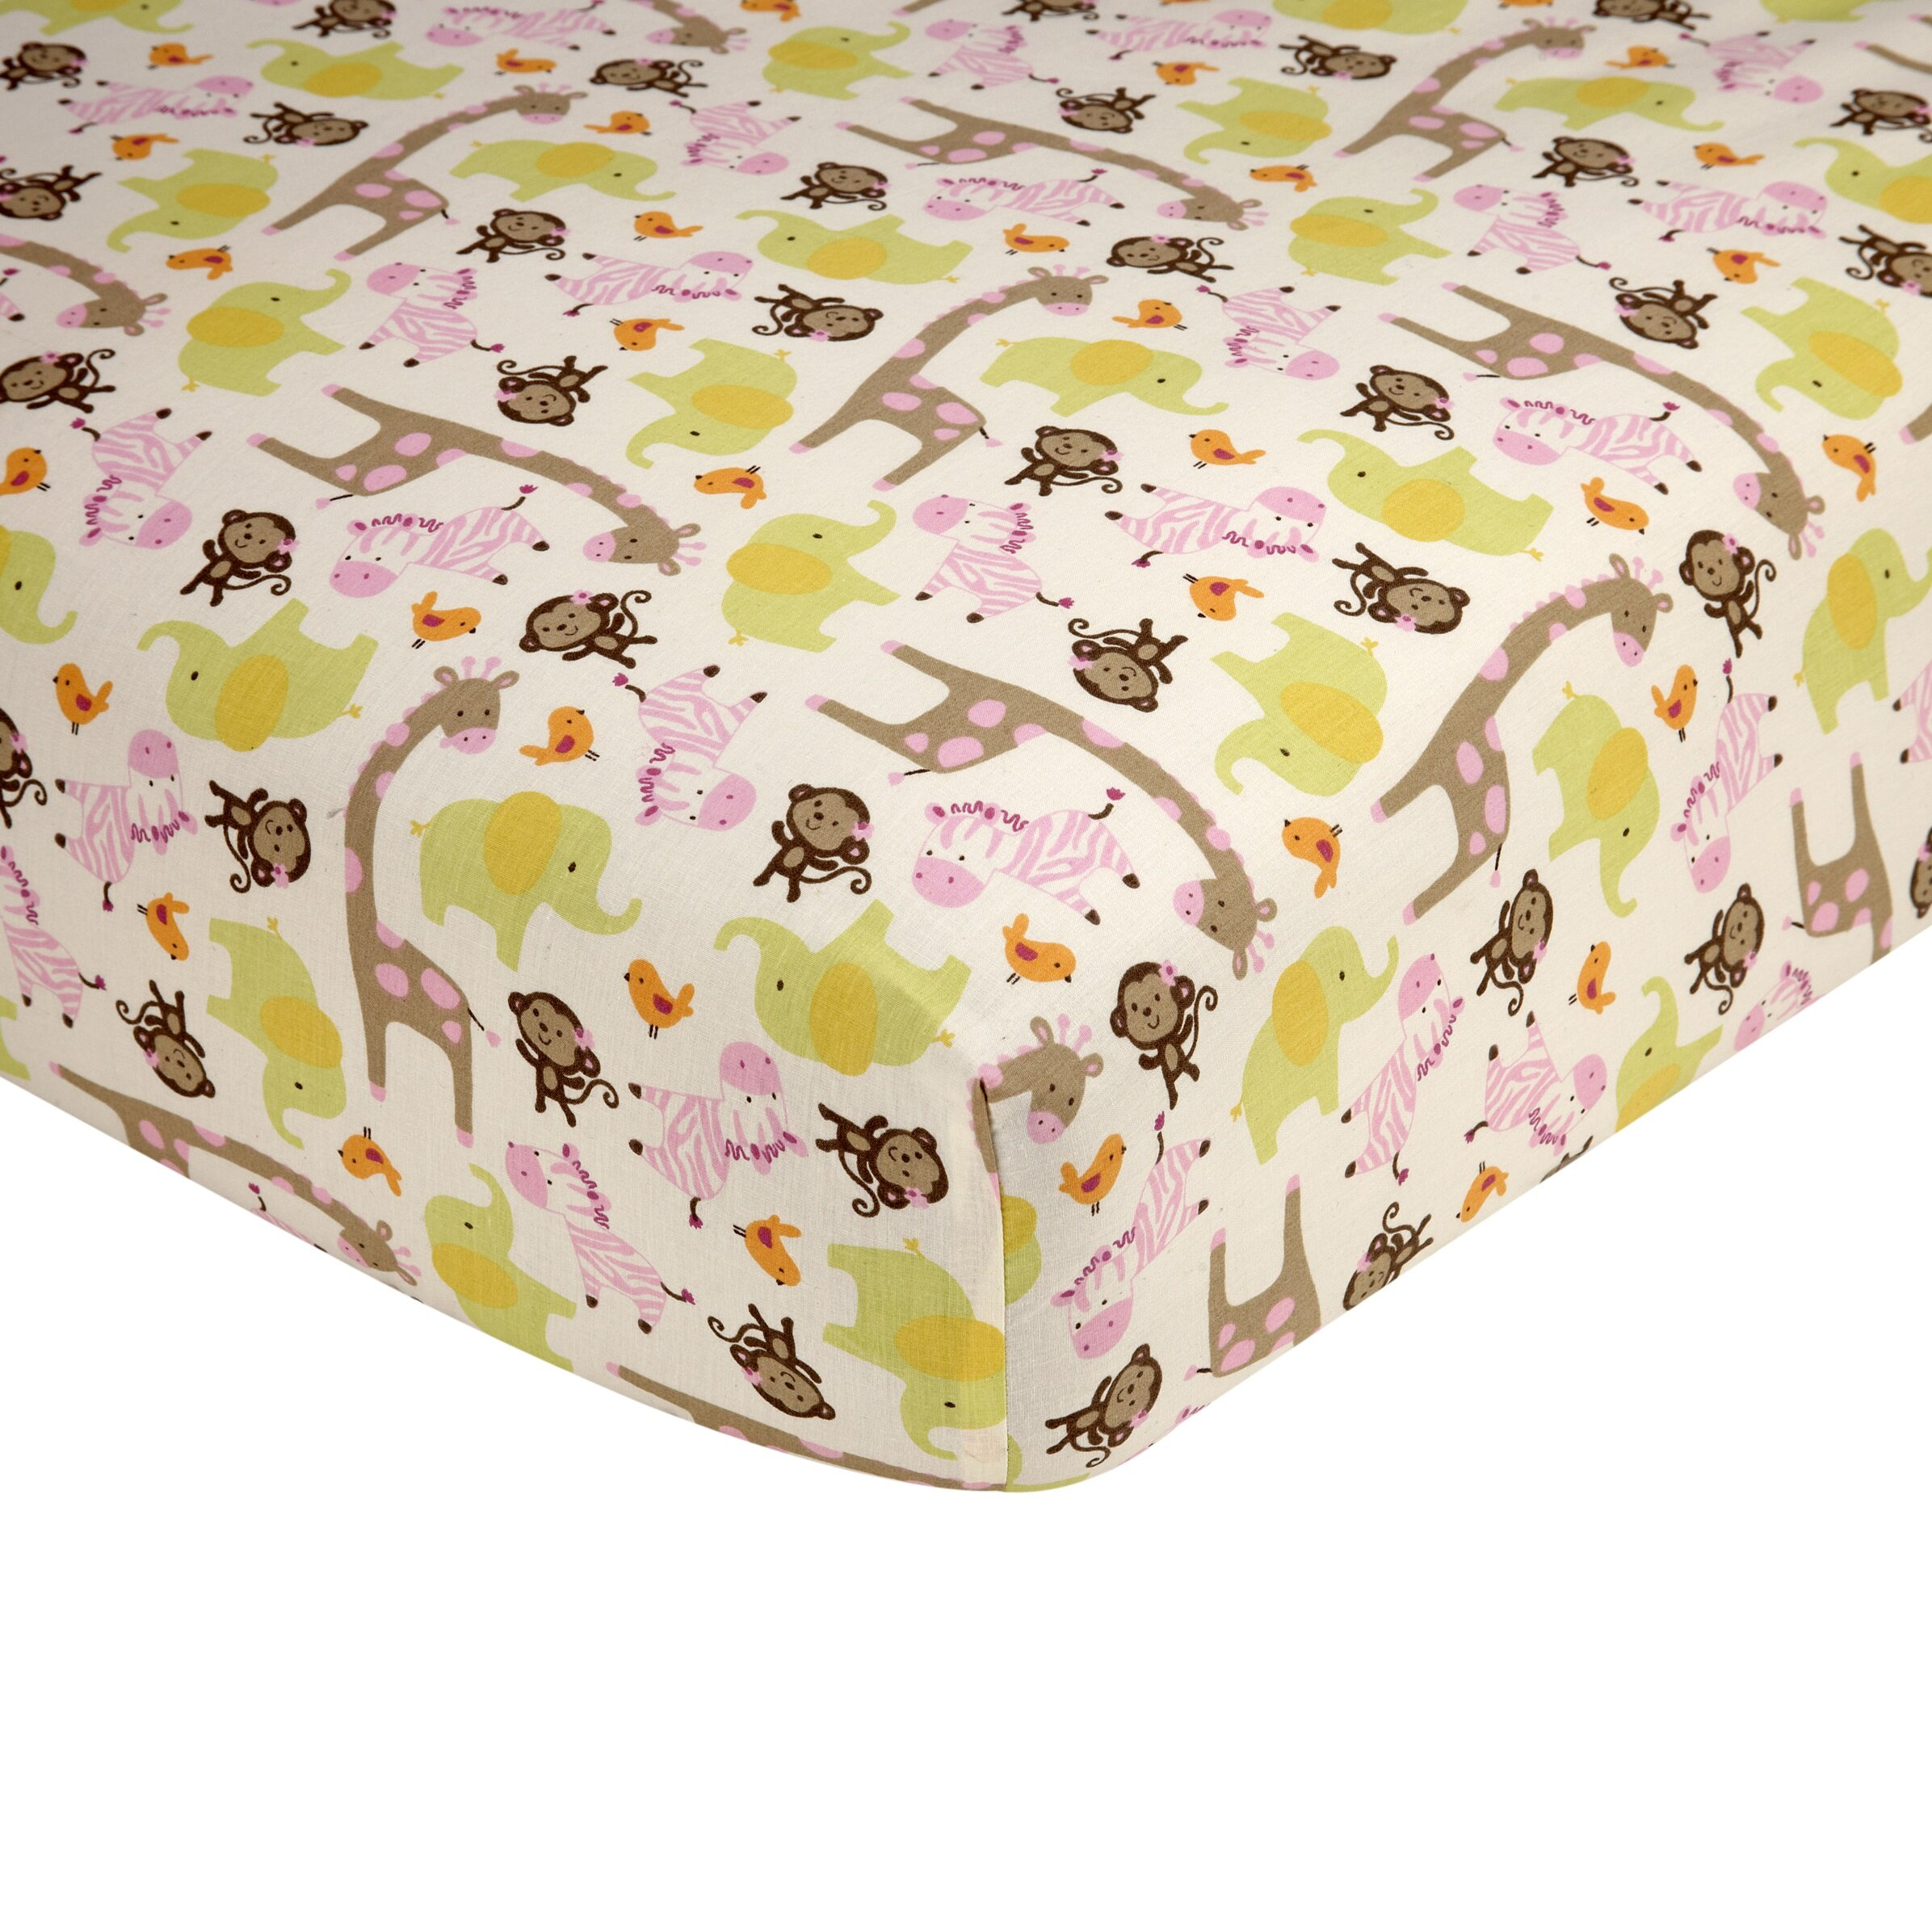 Gocrib adventure crib for sale - Carter S Reg Jungle Fitted Crib Sheet